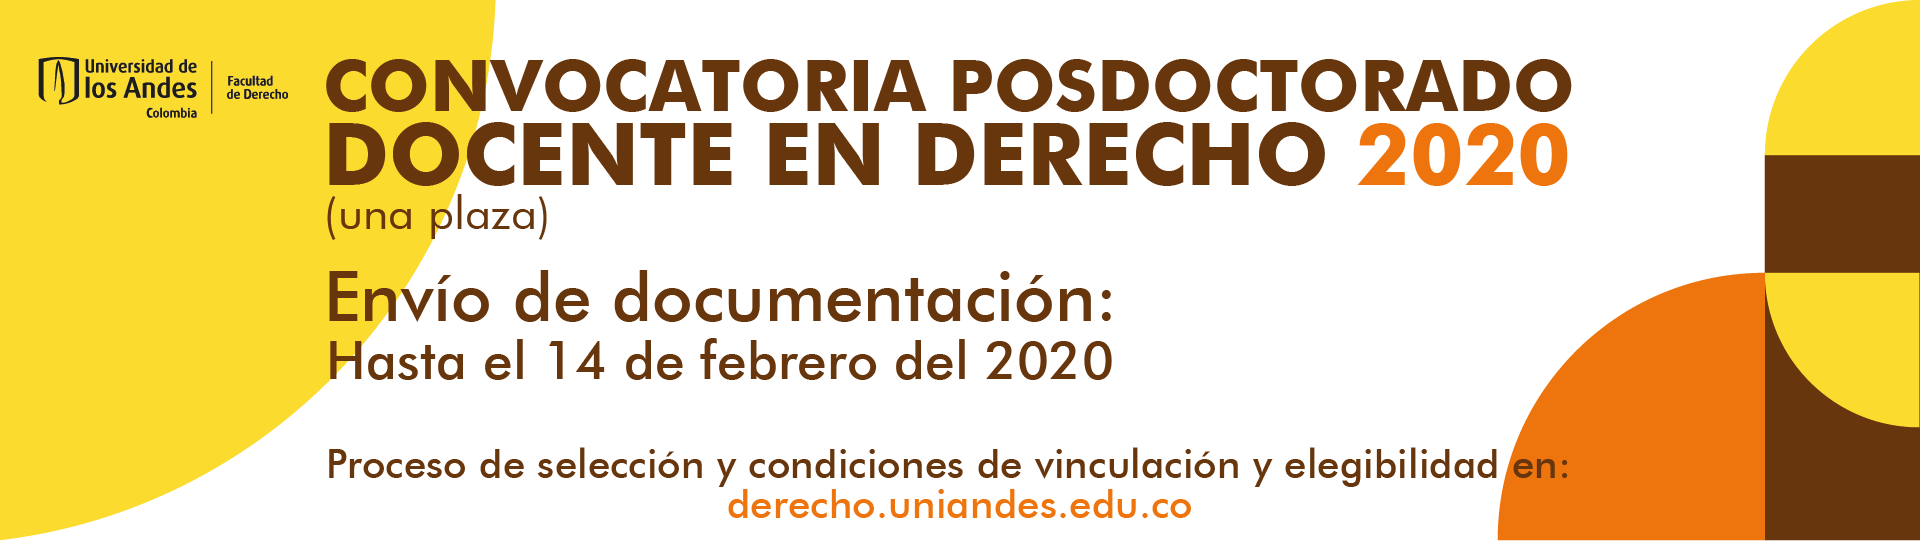 CALL FOR APPLICATION POSDOCTORAL